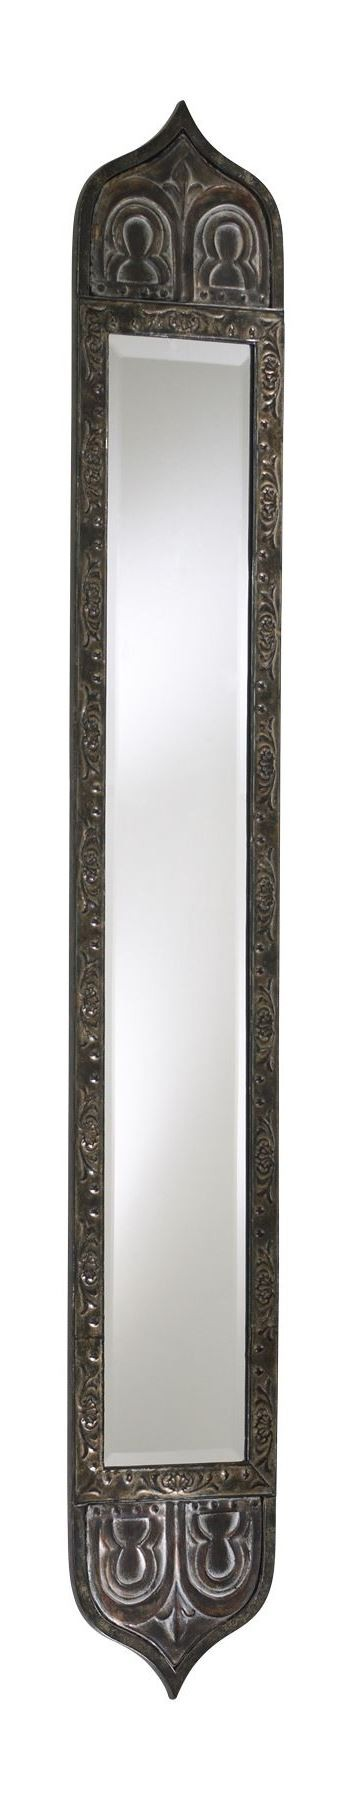 Skinny tall mirror from cyan design 1338 coleman furniture for Tall skinny mirror